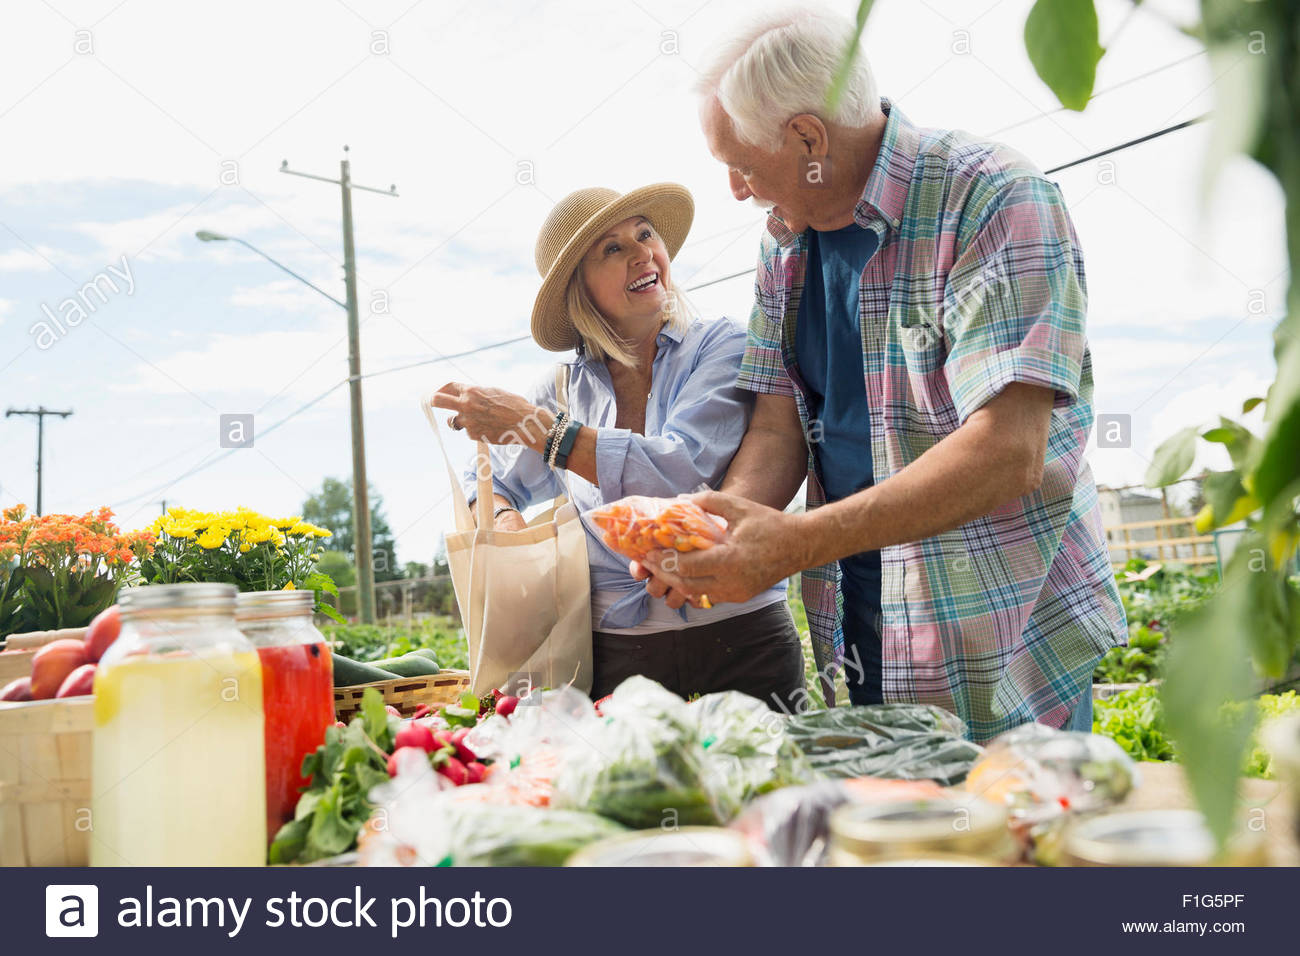 Couple shopping for fresh vegetables at farmers market - Stock Image